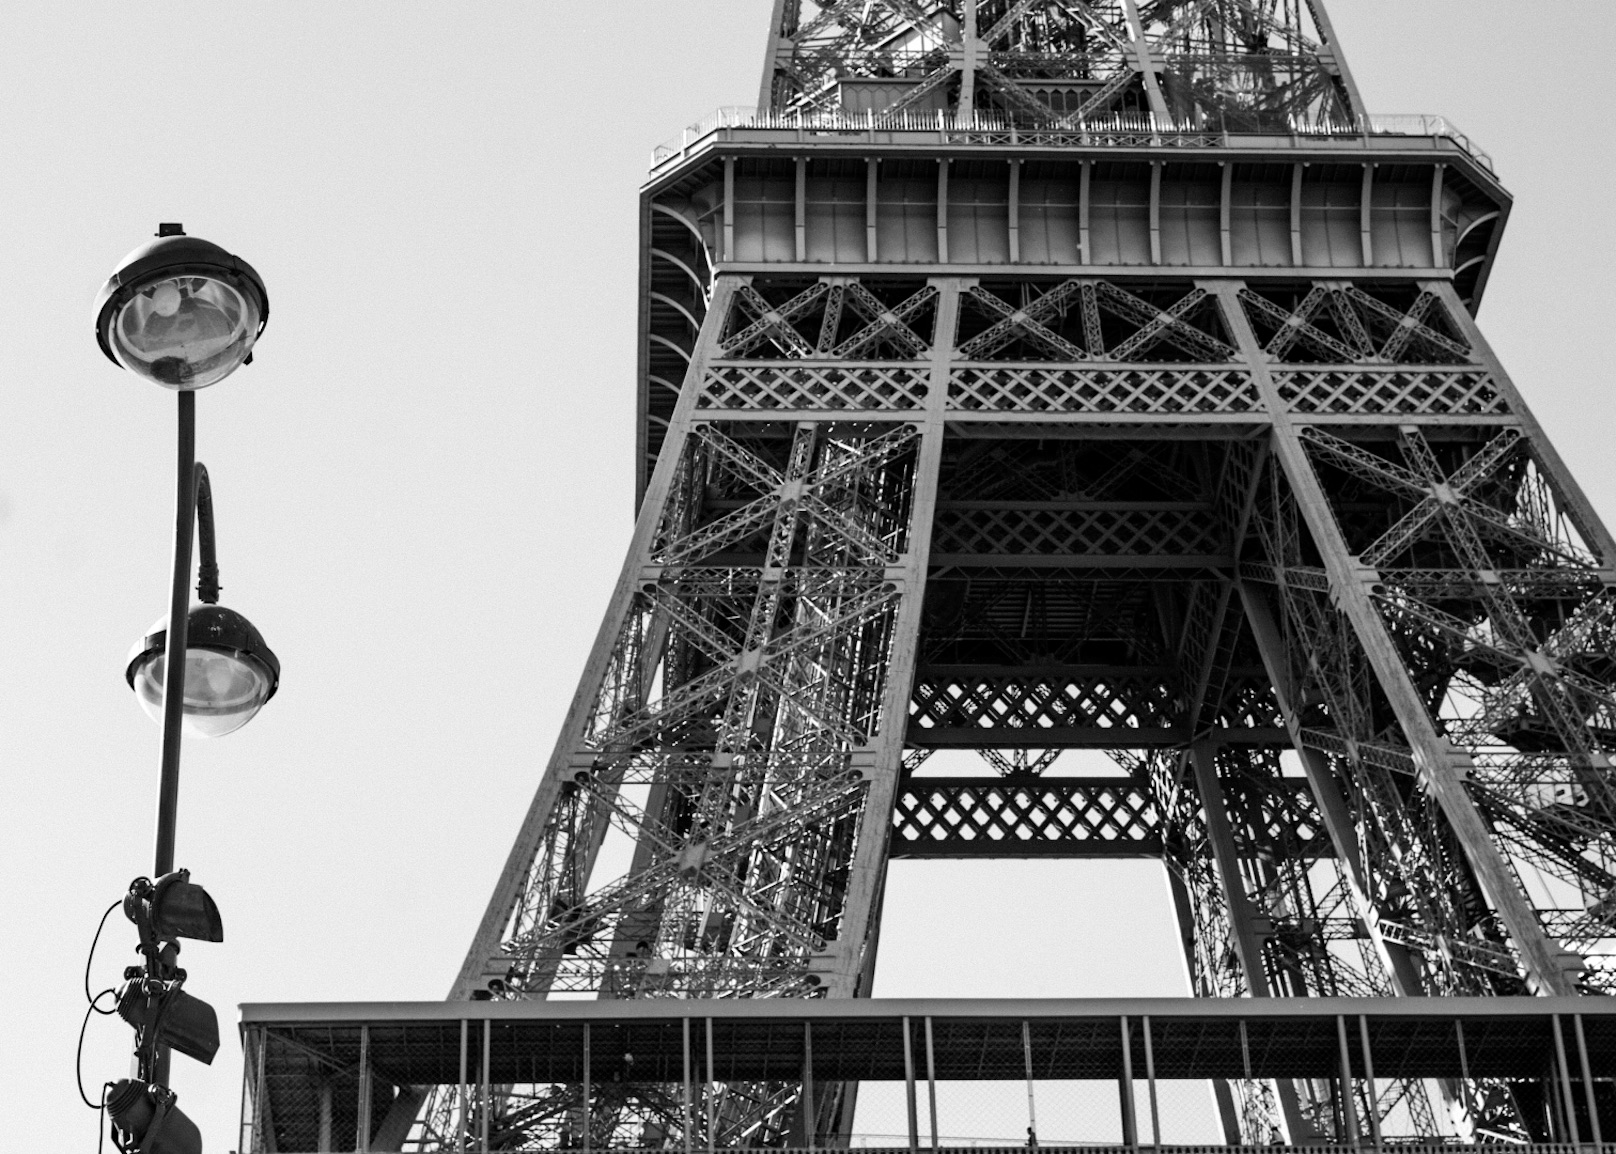 Eiffel_tower with lamp.jpg